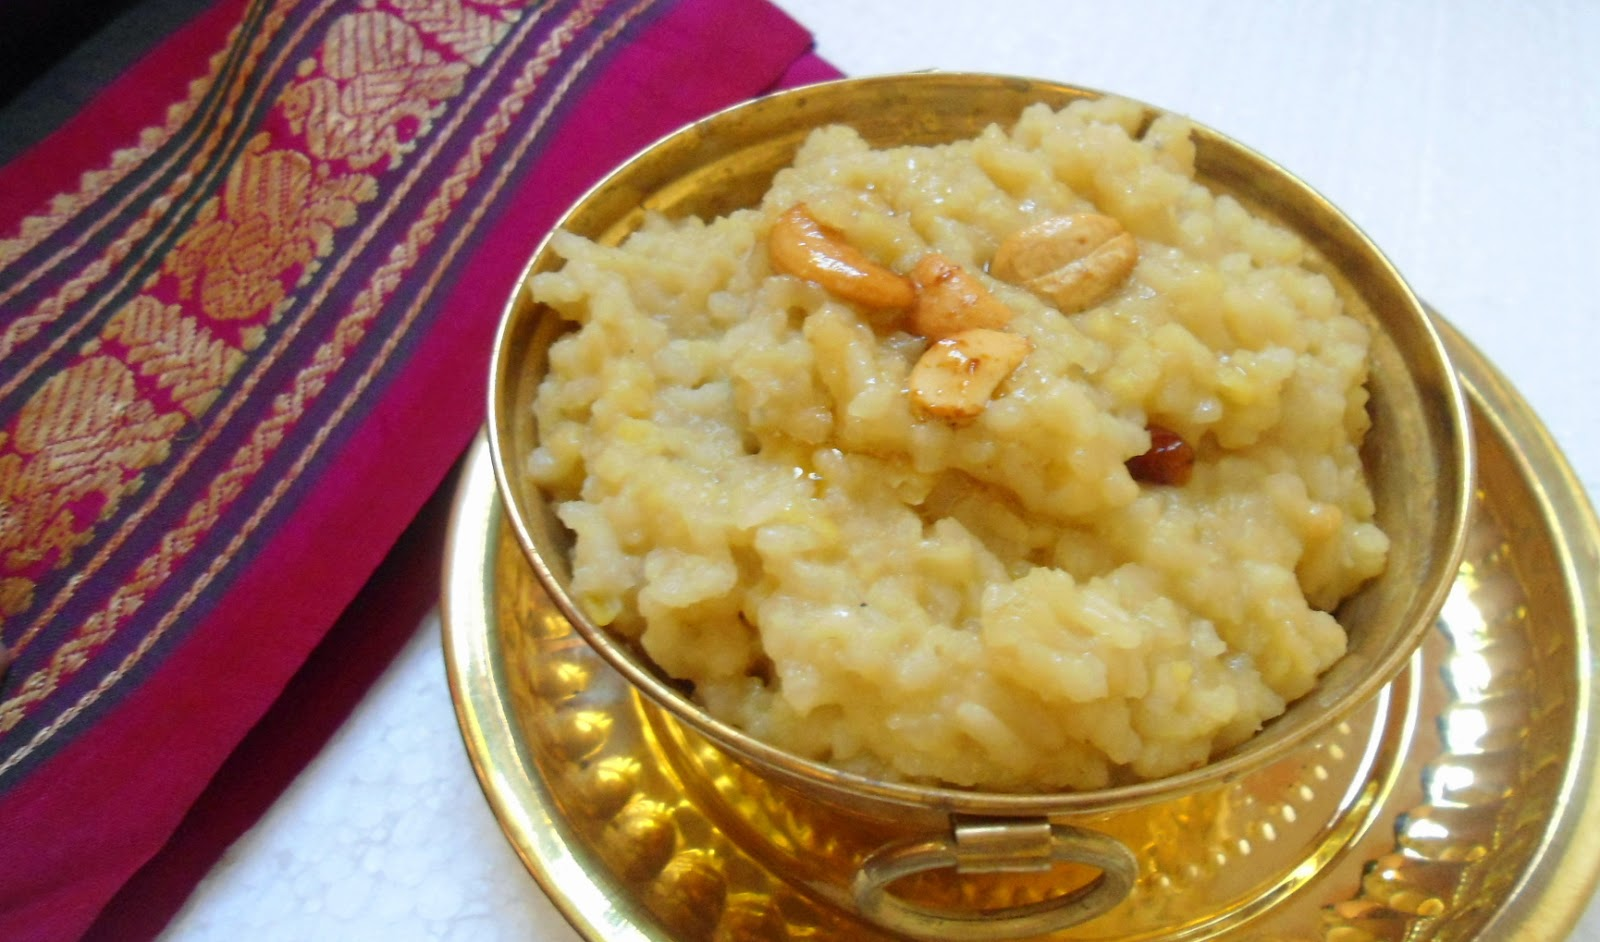 Pongal. Image credit: Babithajcosta/Wikimedia Commons [CC Attribution-SA 4.0 International licence]